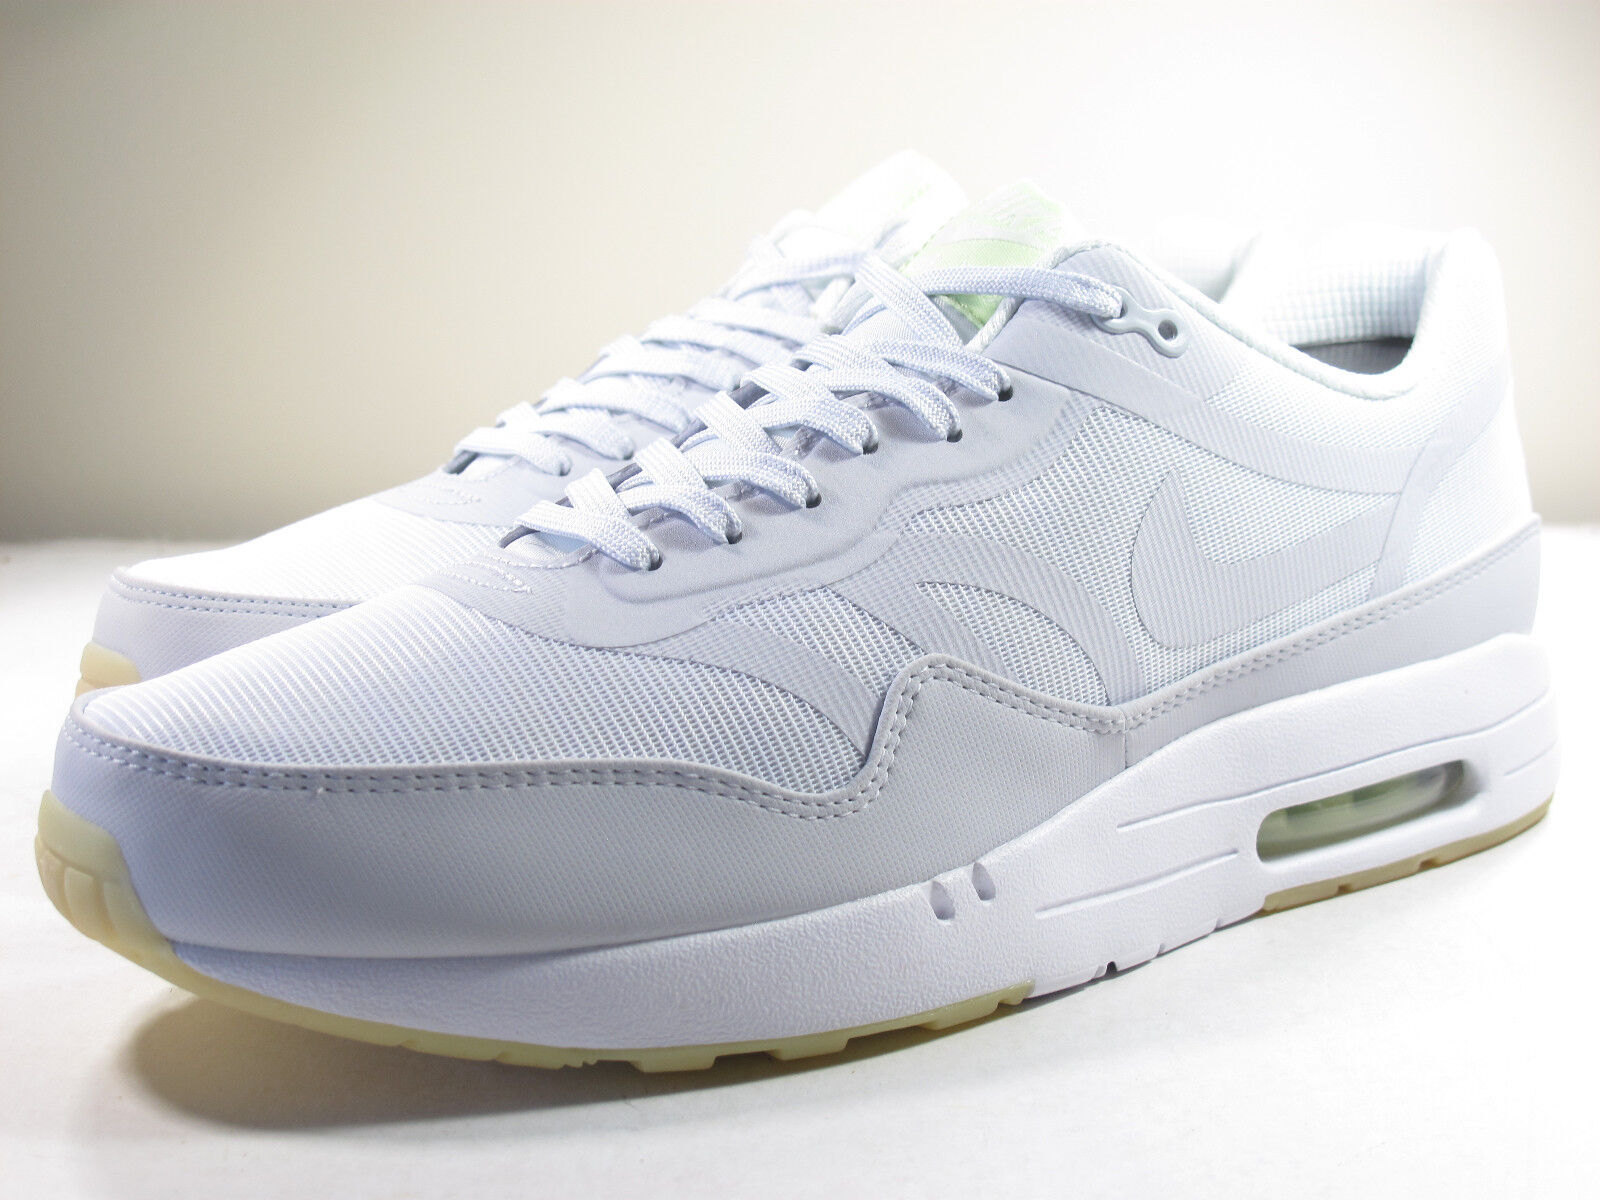 DS 2018 NIKE AIR MAX 1 GLOW IN THE DARK 8.5, 12, 13 SUPREME ATMOS 90 Comfortable and good-looking